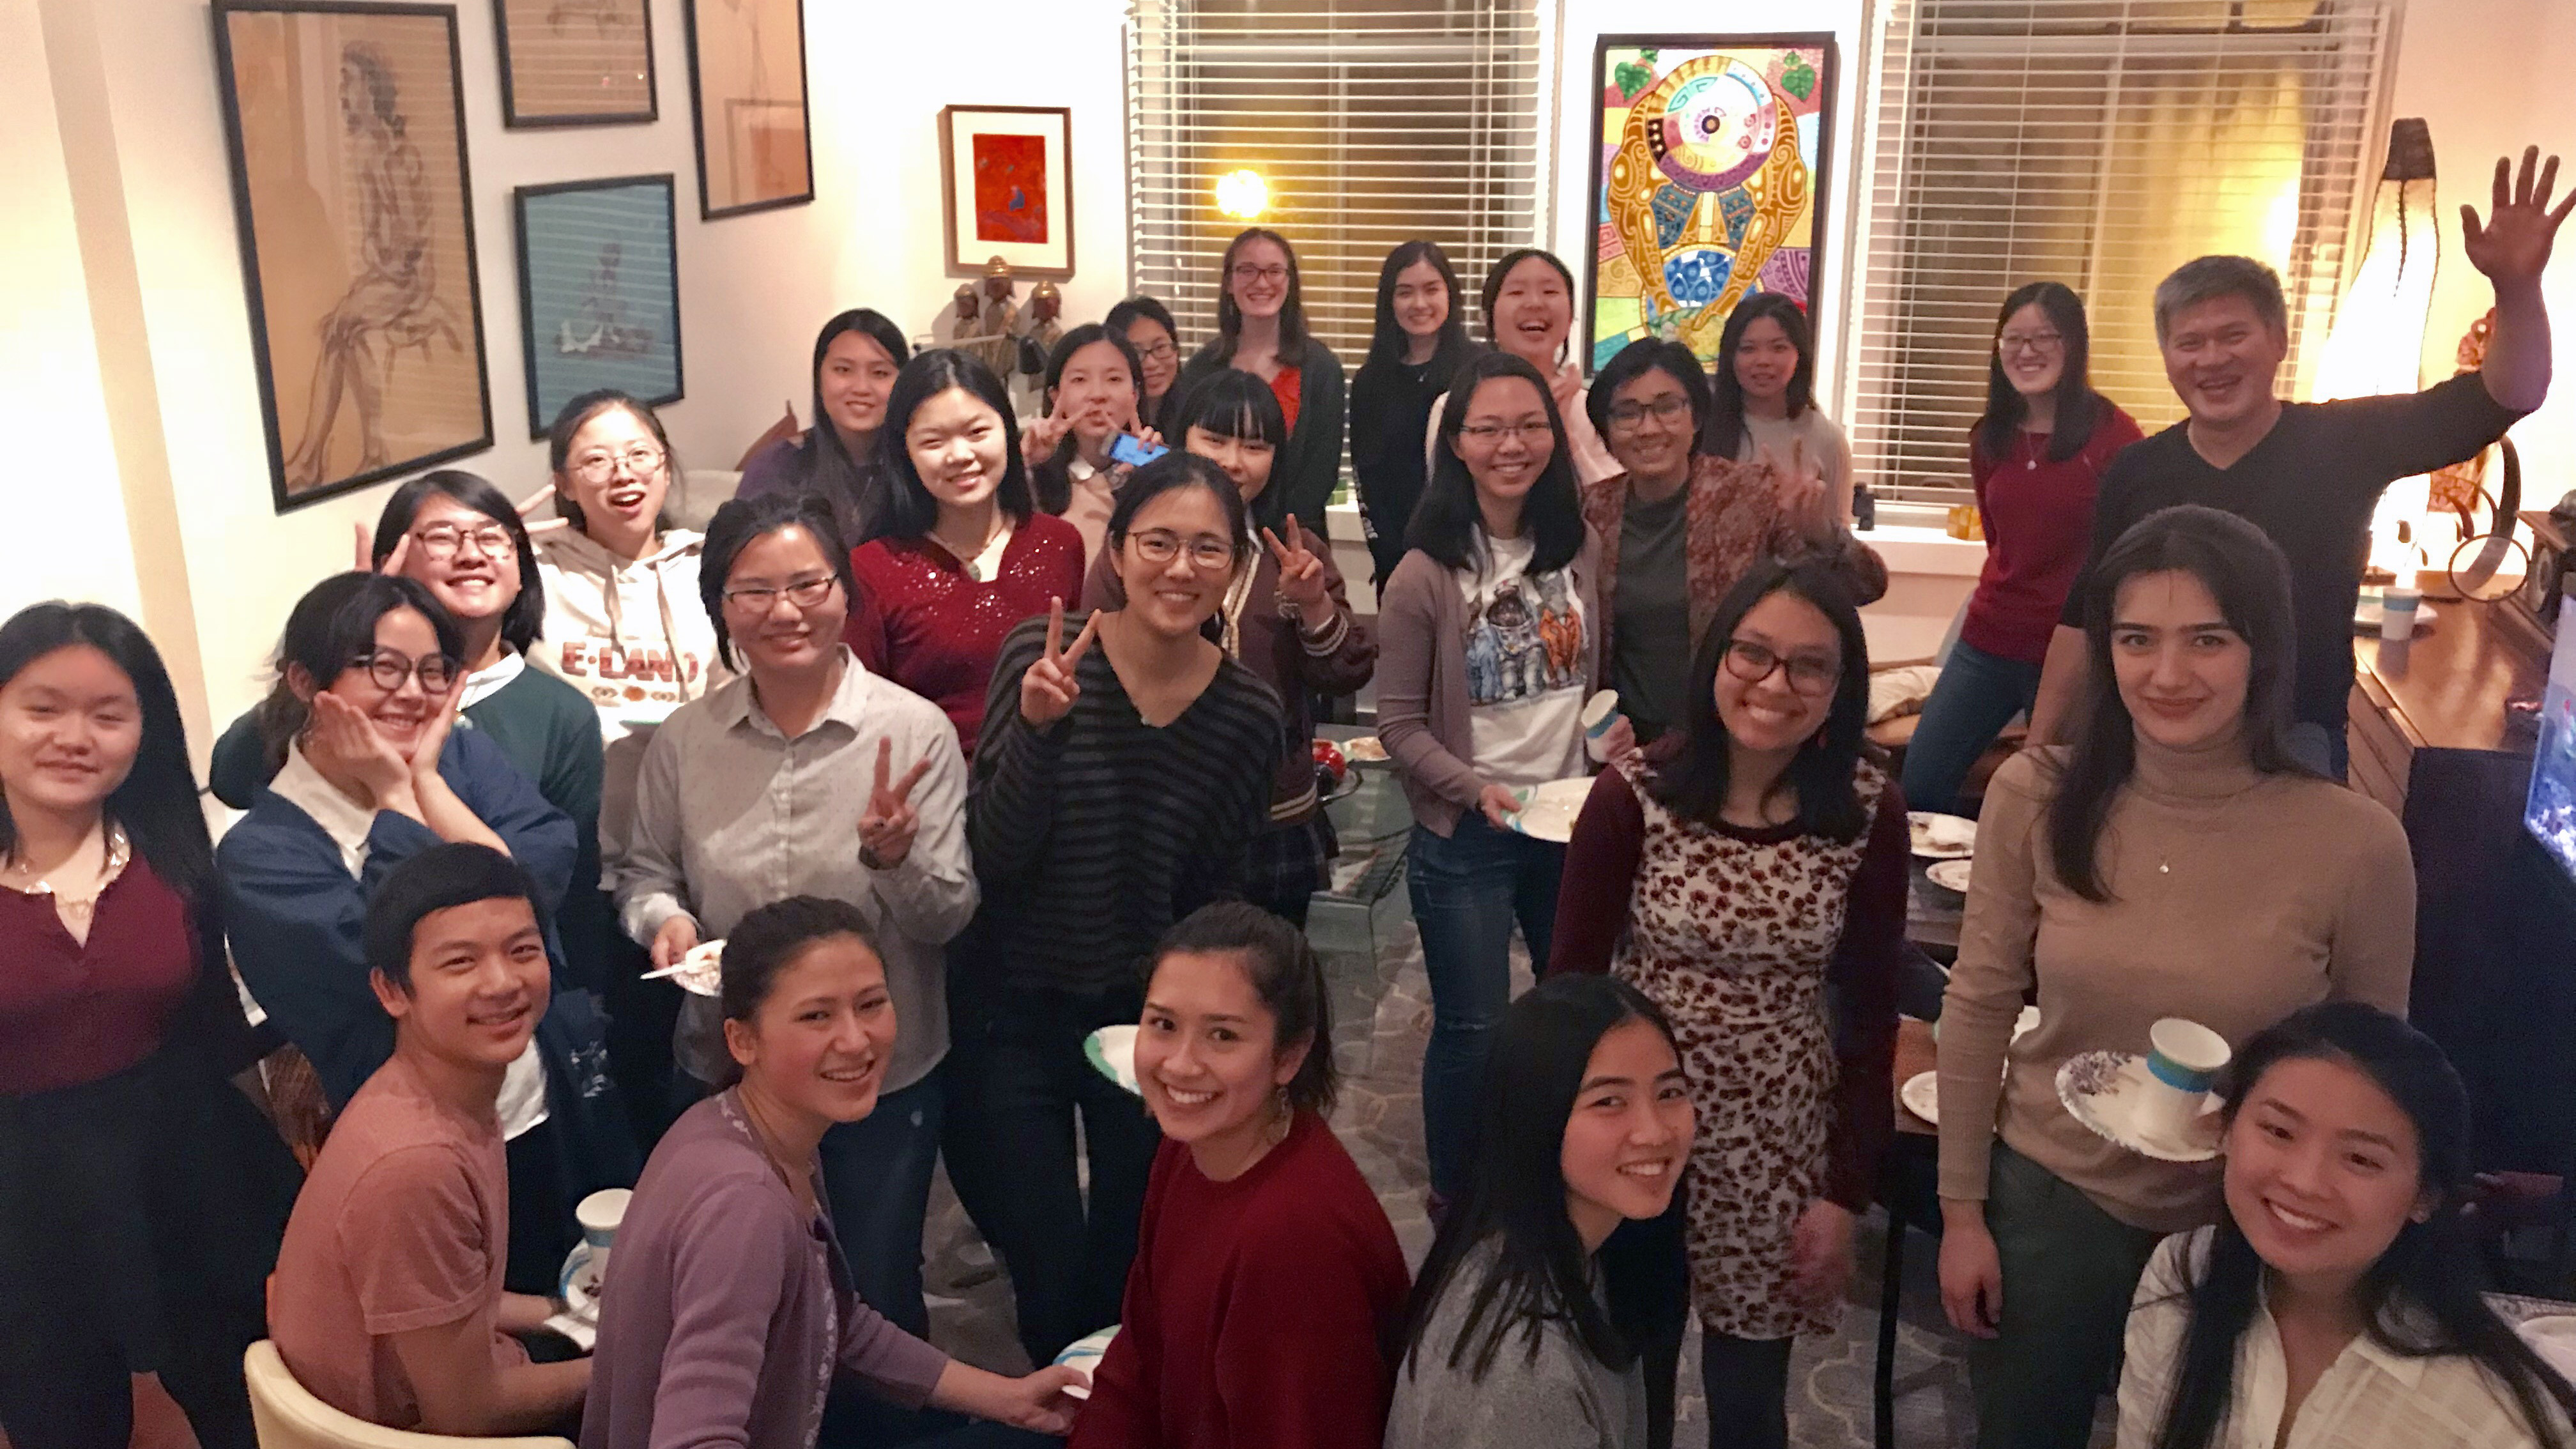 Celebrating Lunar New Year with fellow students, past and present, of the First-Year Seminar Chinese Diasporic Communities